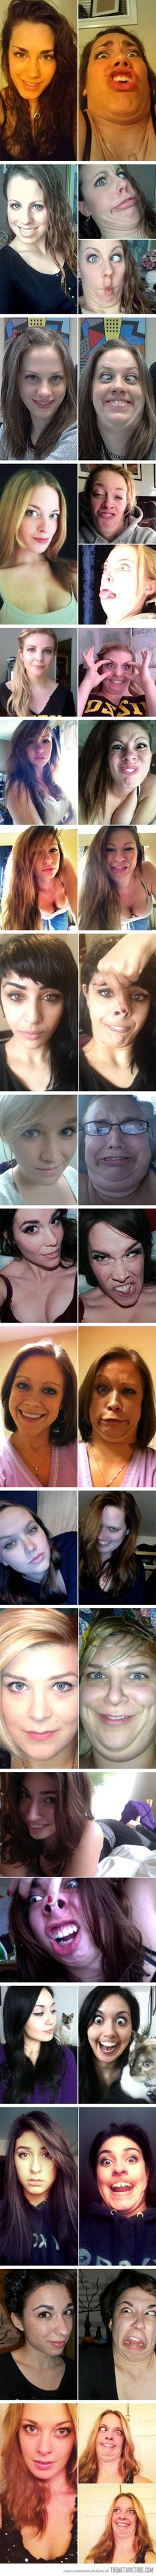 Pretty girls, ugly faces…OMG 3rd one down, goofy face on the right...looks TOO much like someone I once knew...LOLOLO!!!!